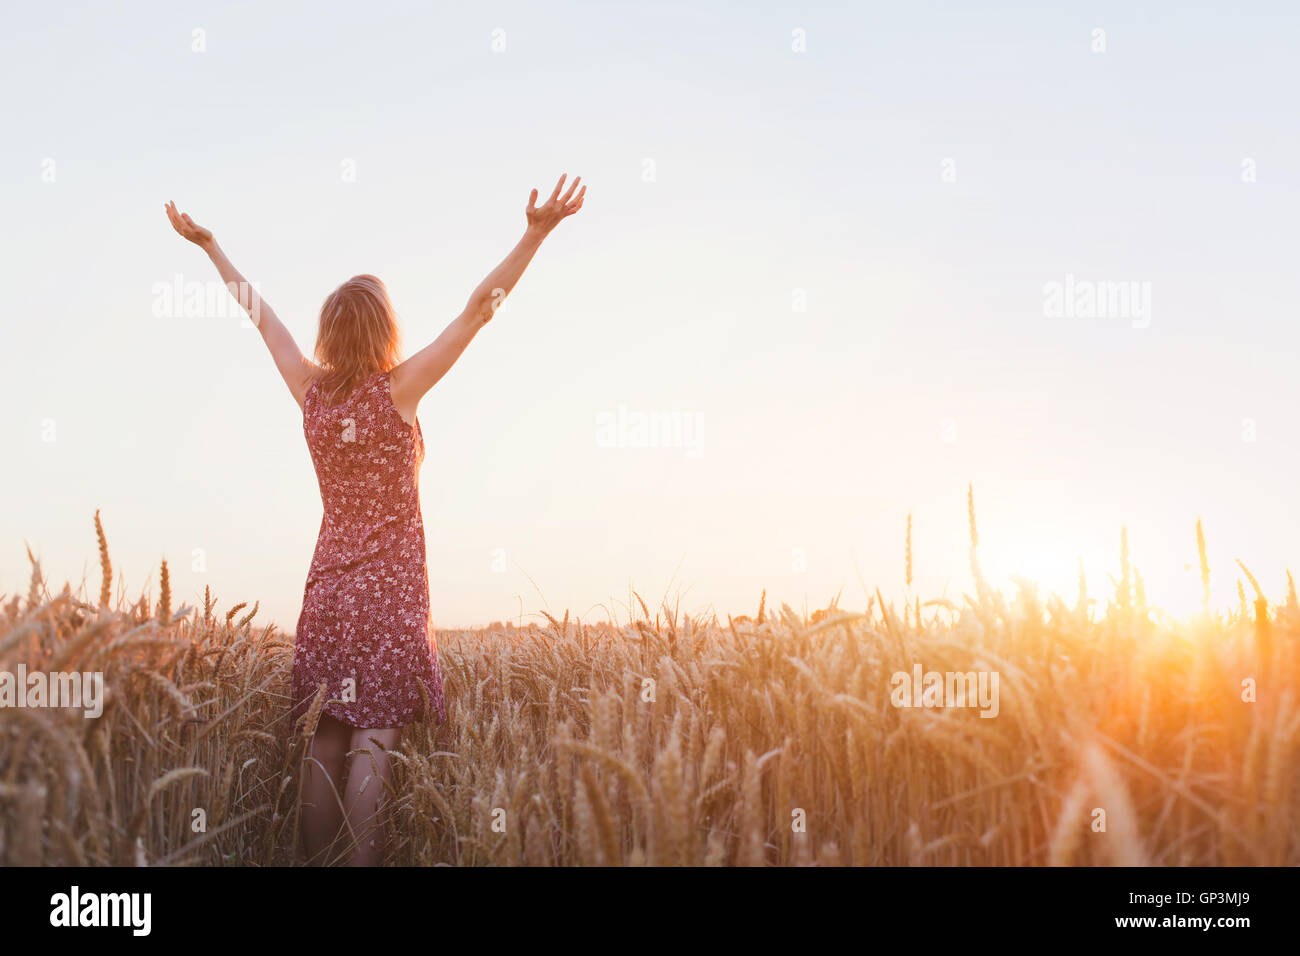 breathing, woman with raised hands enjoying sunset in the field - Stock Image